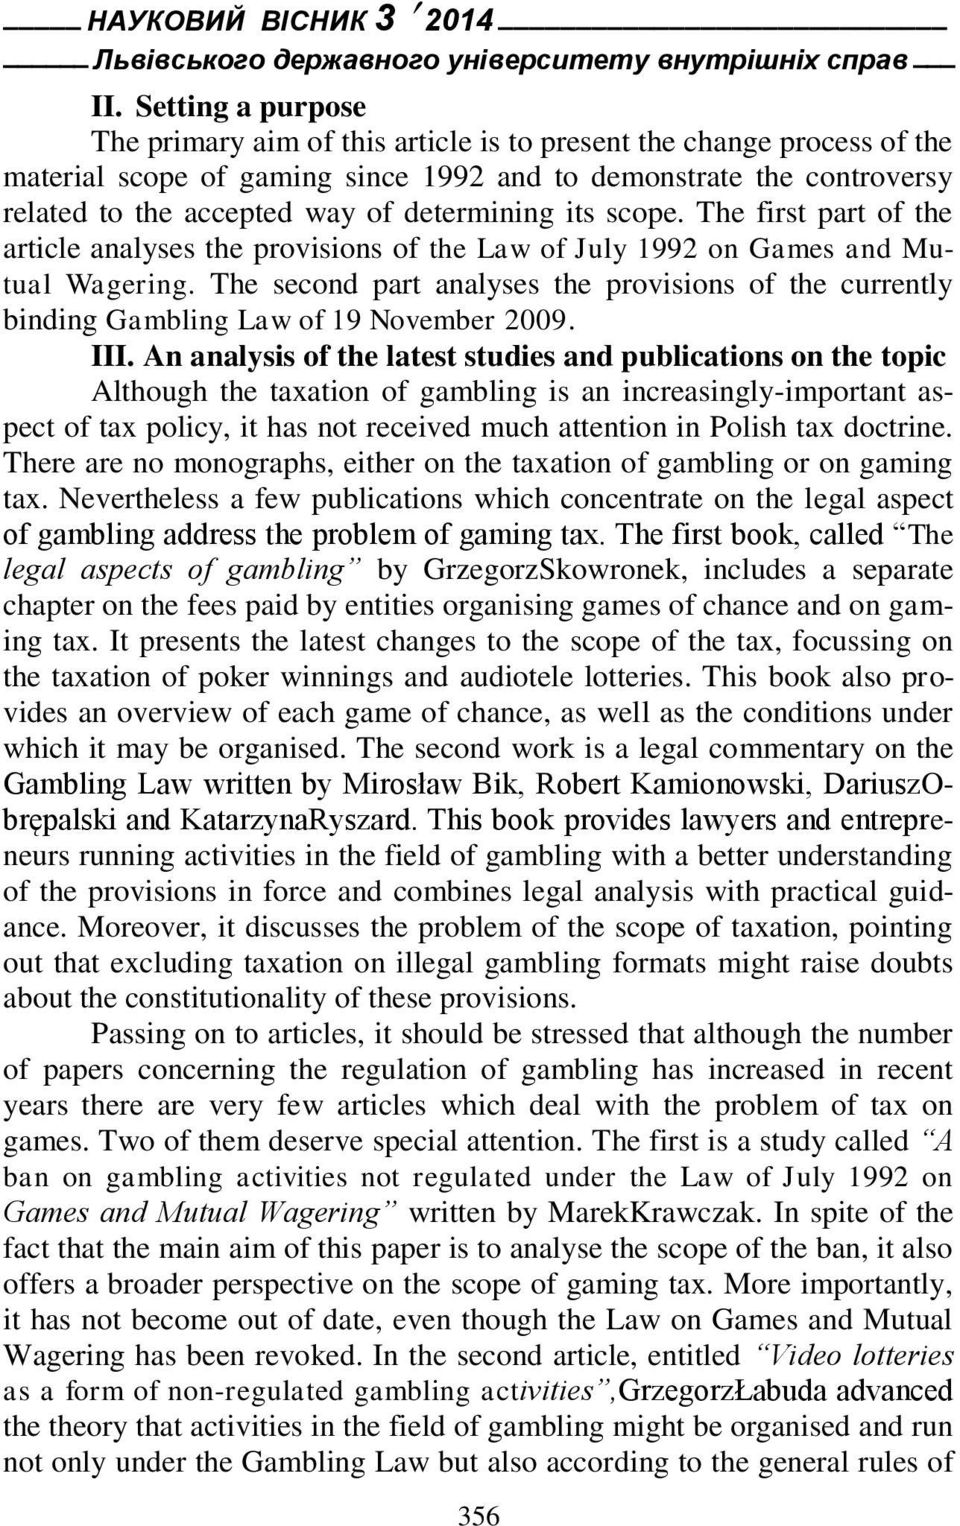 determining its scope. The first part of the article analyses the provisions of the Law of July 1992 on Games and Mutual Wagering.